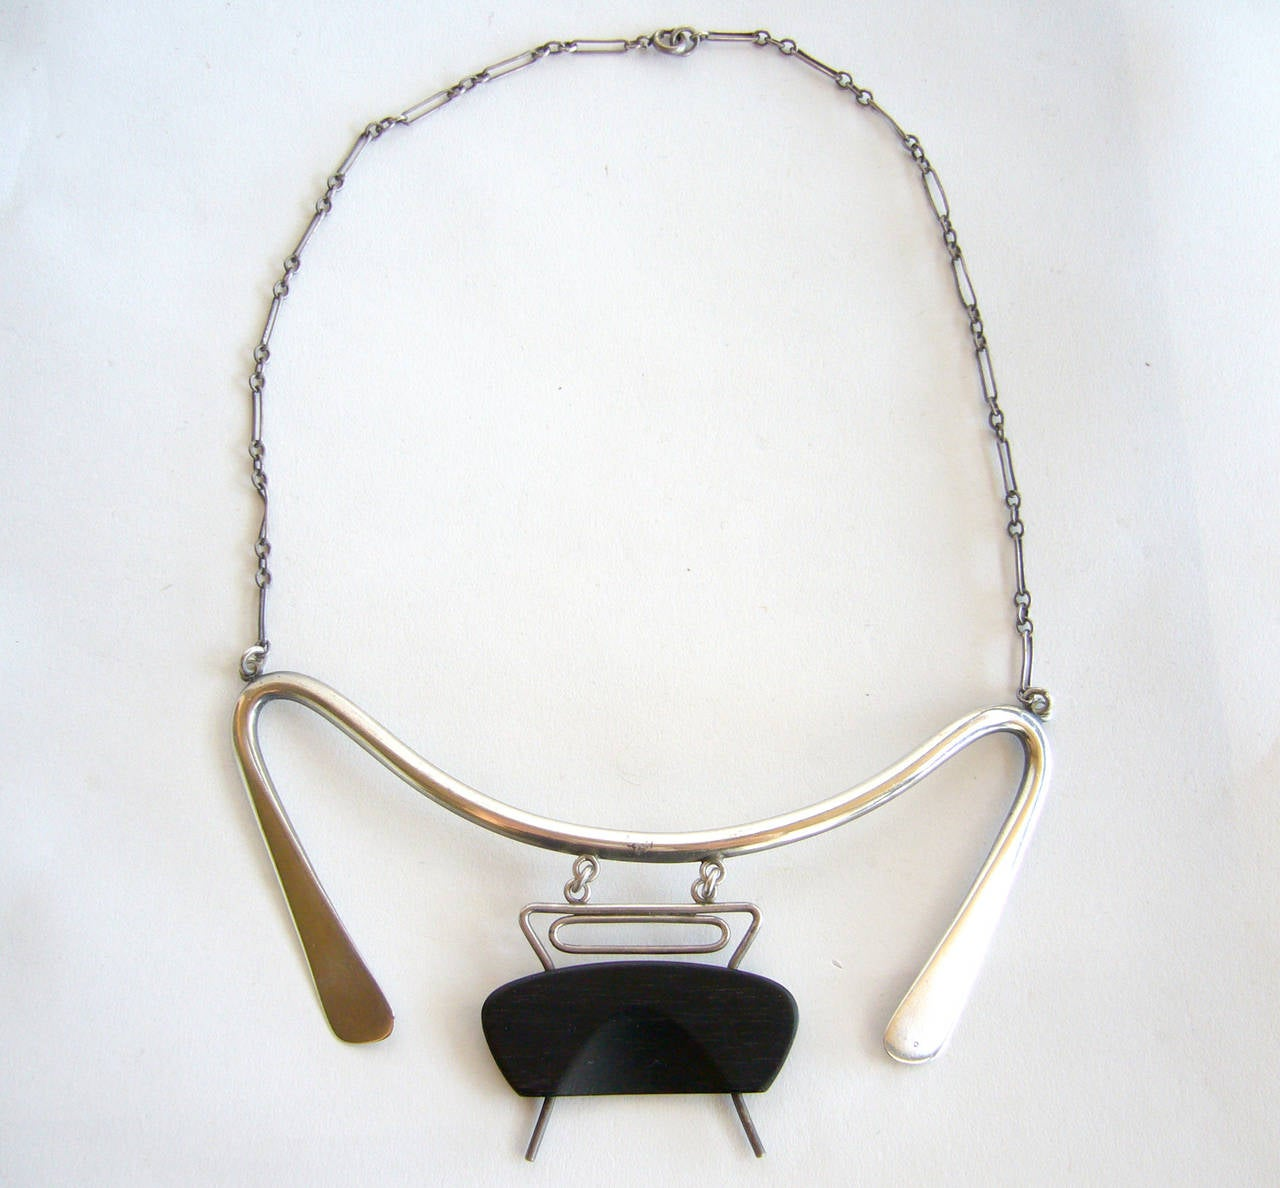 A rare, American abstract modernist sterling silver and exotic wood necklace, circa 1950's and designed by Irvin and Bonnie Burkee of Arizona.  Necklace is comprised of hand forged, curvilinear shaped sterling silver and a hinged, hand carved wood